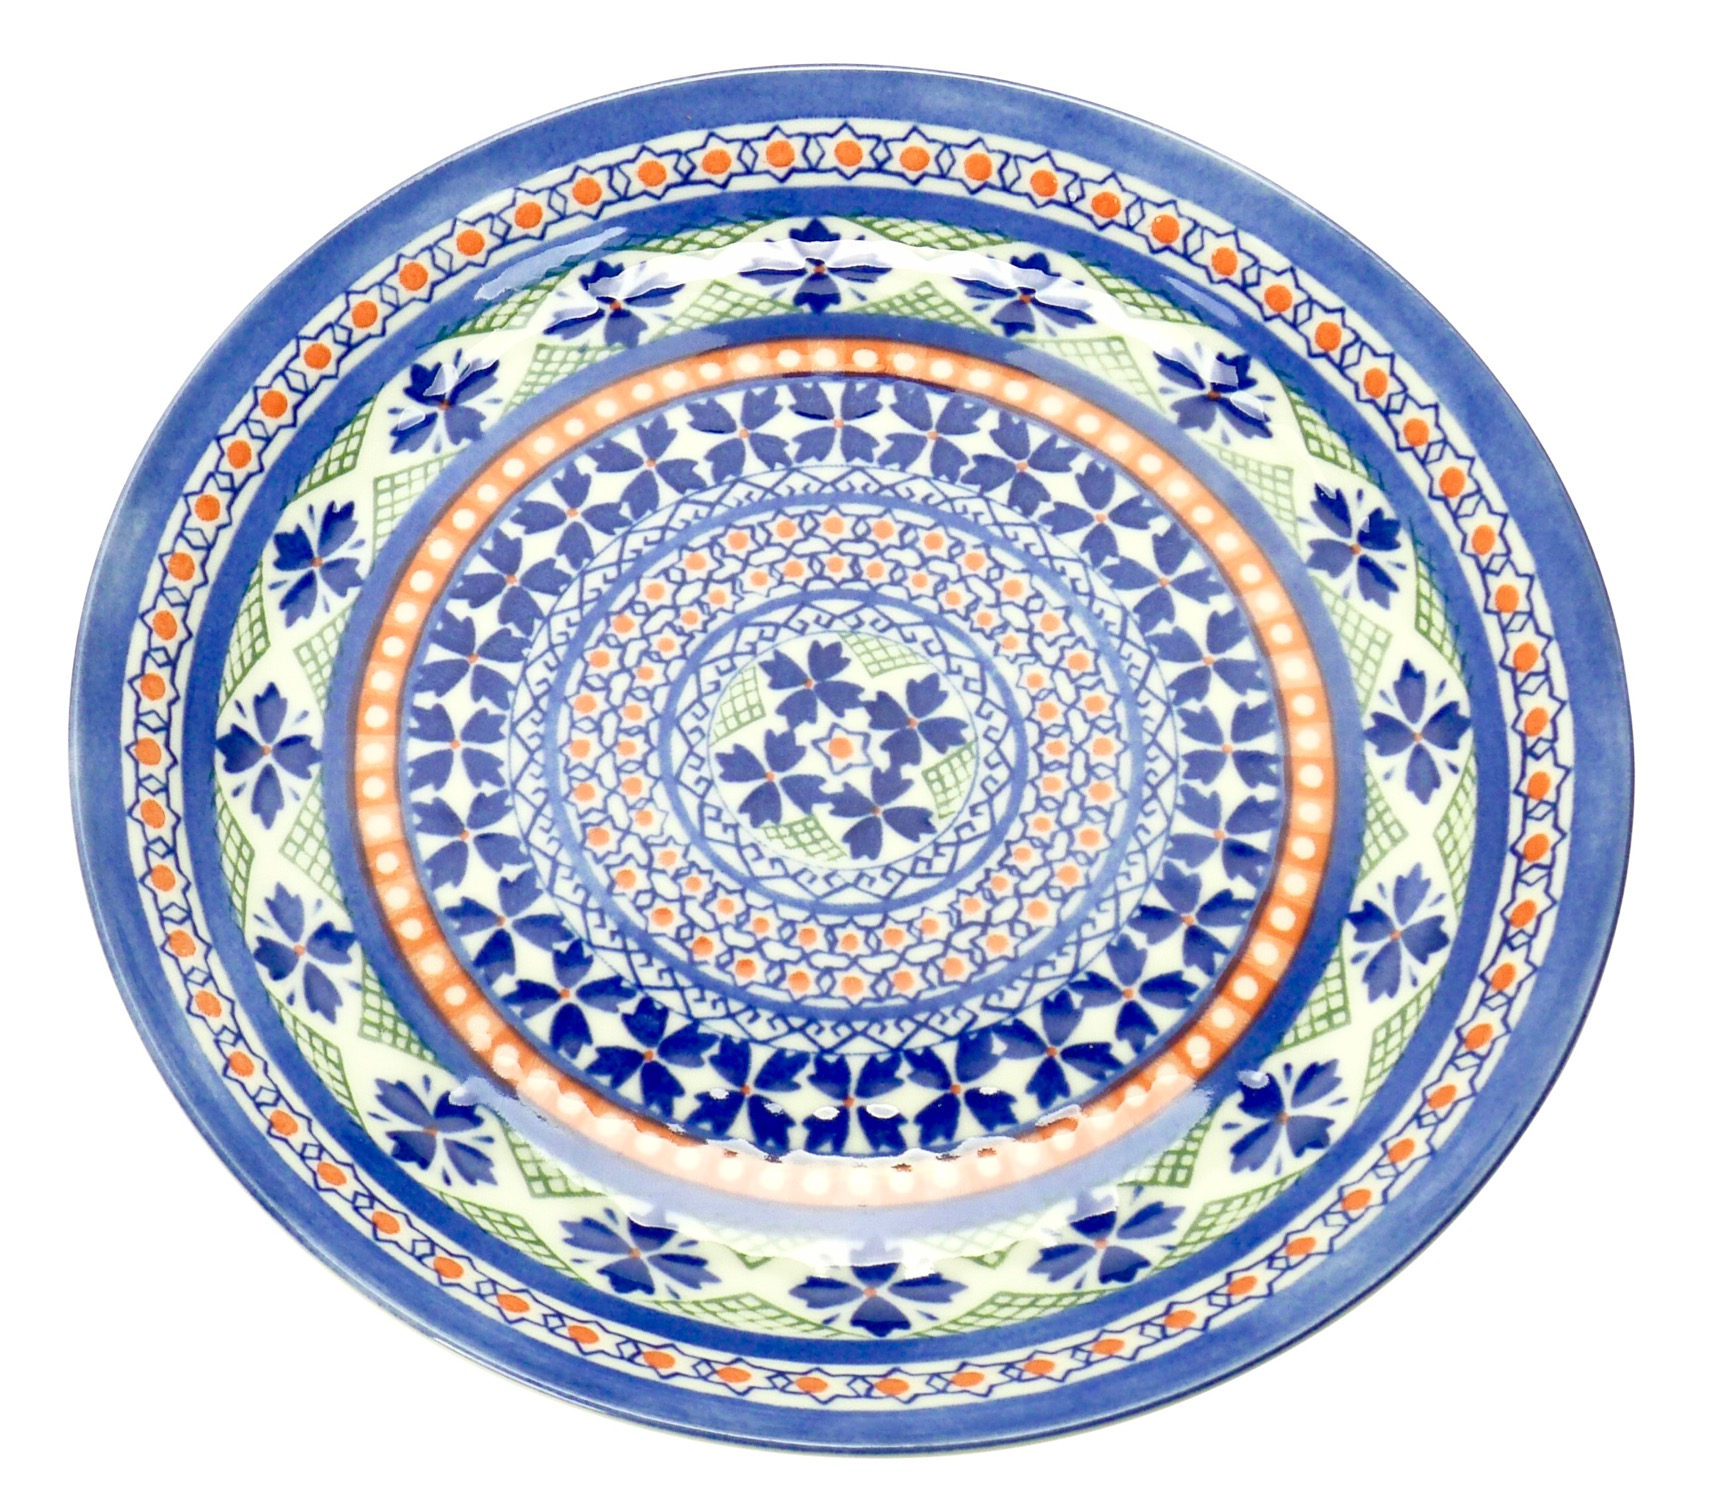 Image of Porcelain Plate with Blue and Orange Morocan Motif, 10-Inch, Set Of Four